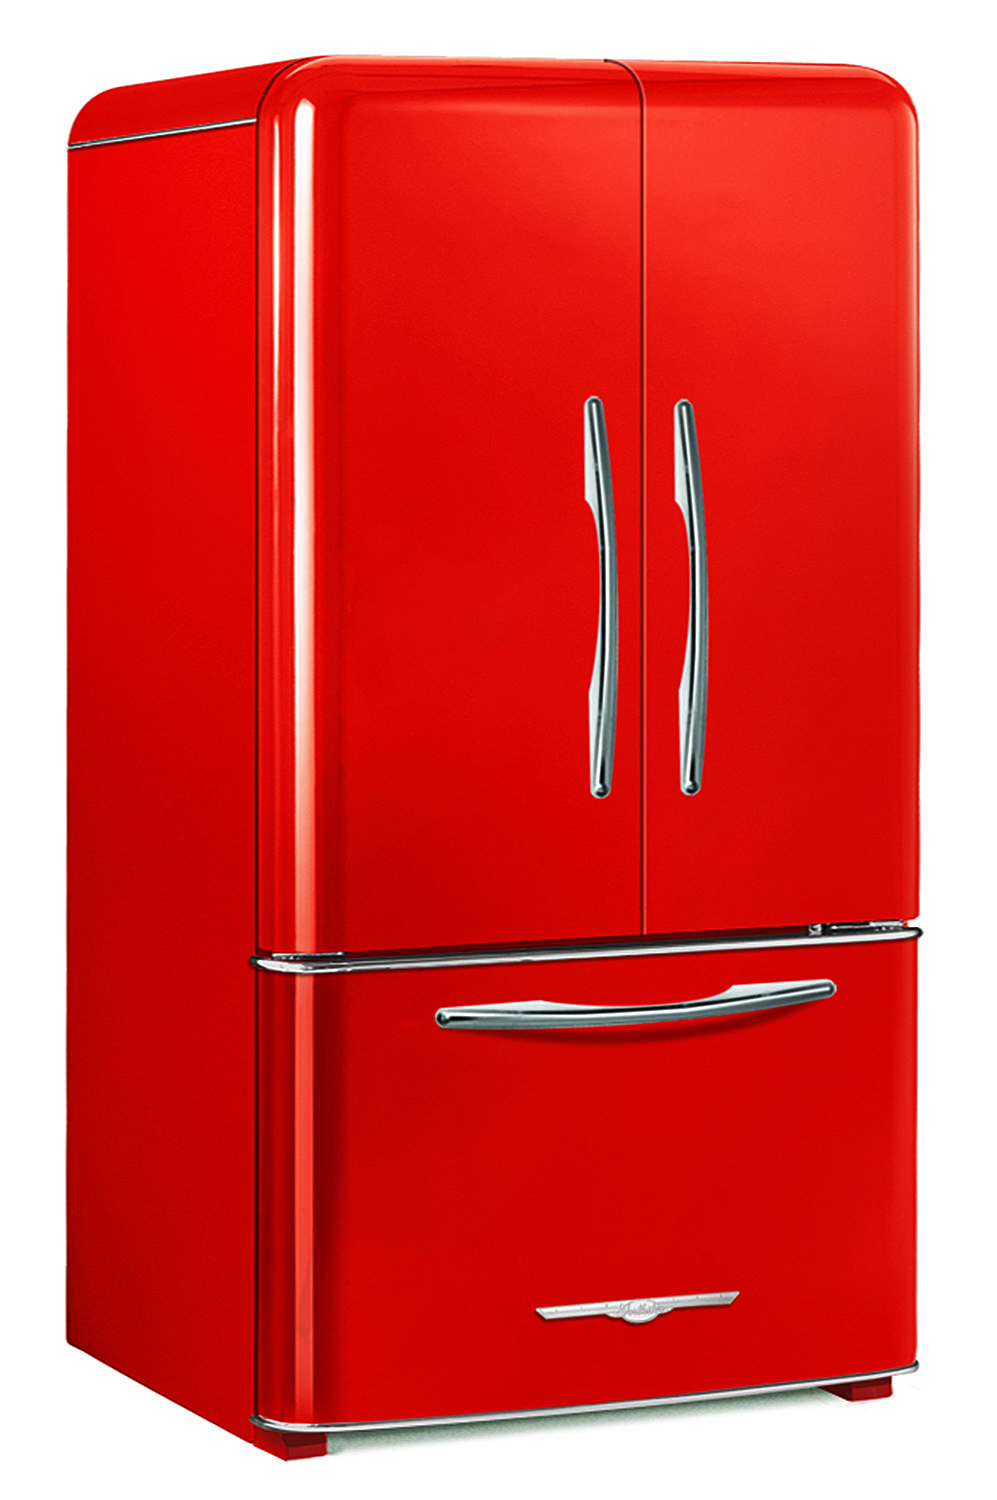 Elmira Stove Works Retro Style French Door Refrigerator If They Had This In White I Would Sell My Car To Get It Retro Fridge Retro Appliances Retro Home Decor